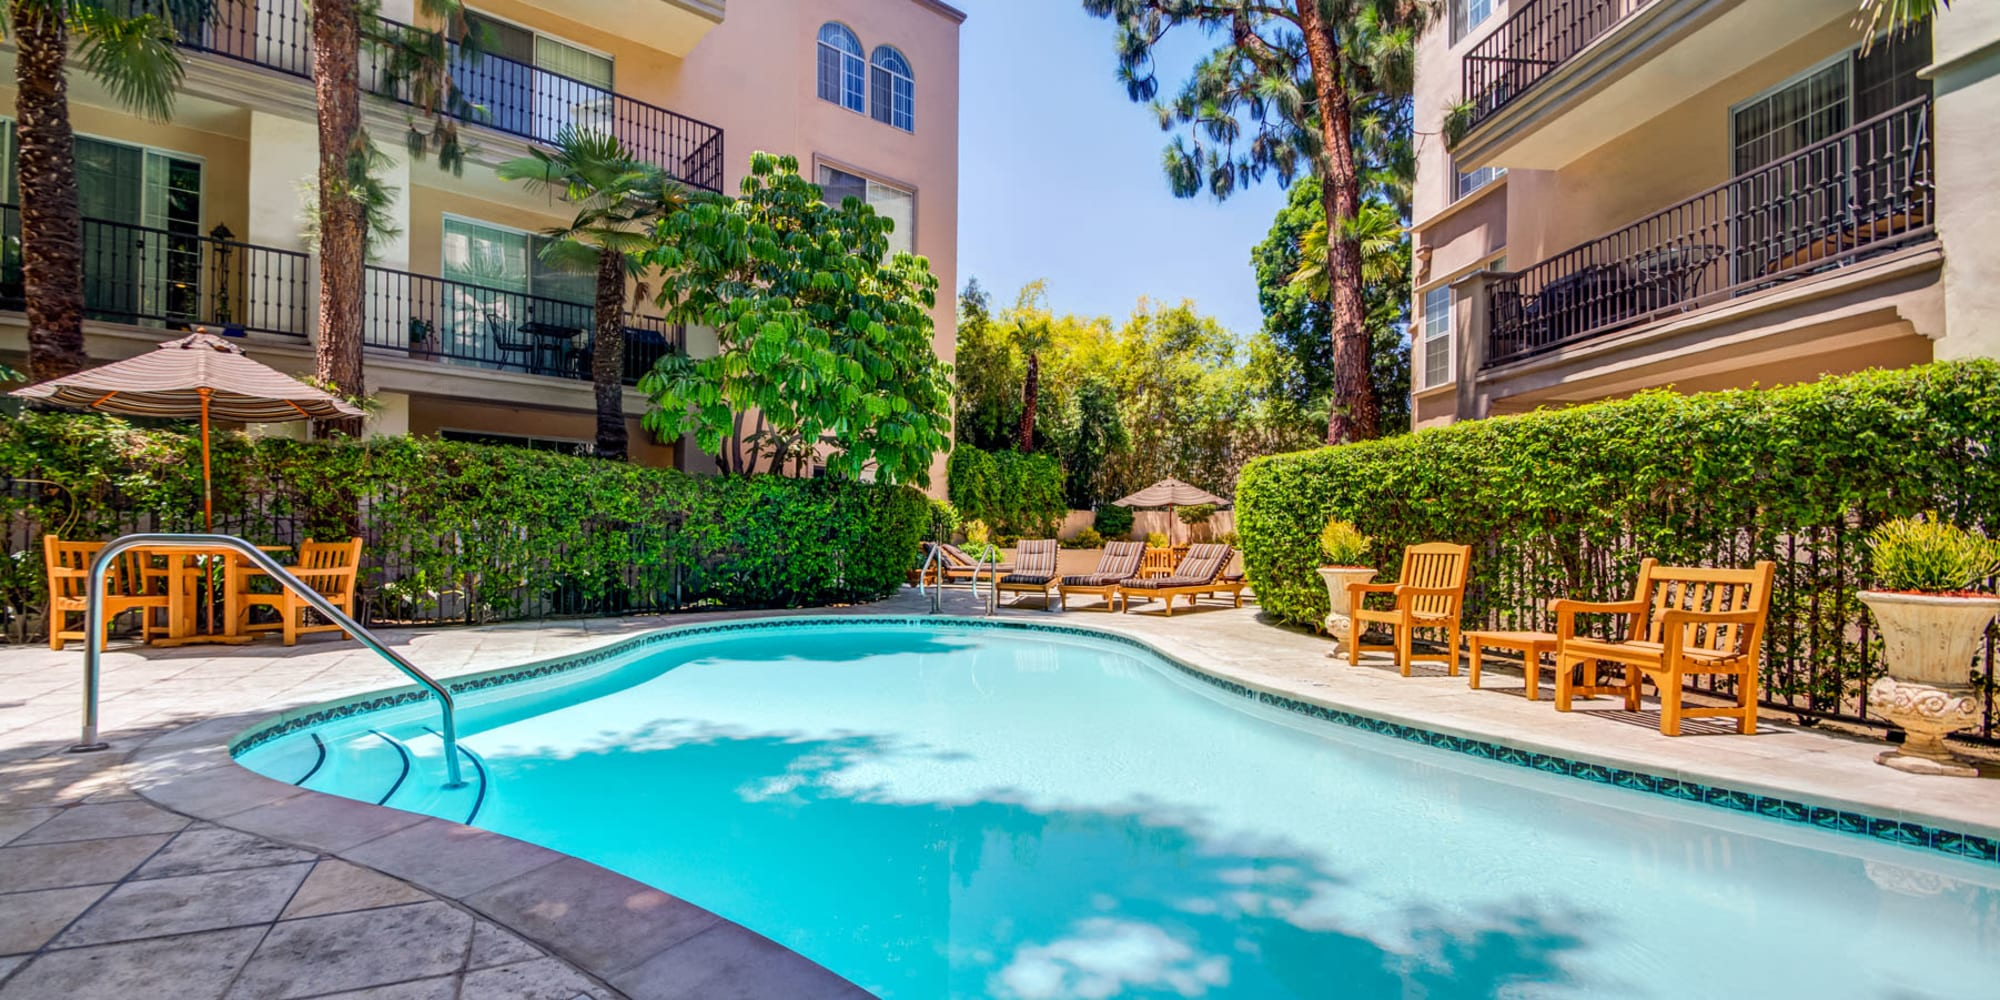 Resort-style swimming pool on a gorgeous day at L'Estancia in Studio City, California